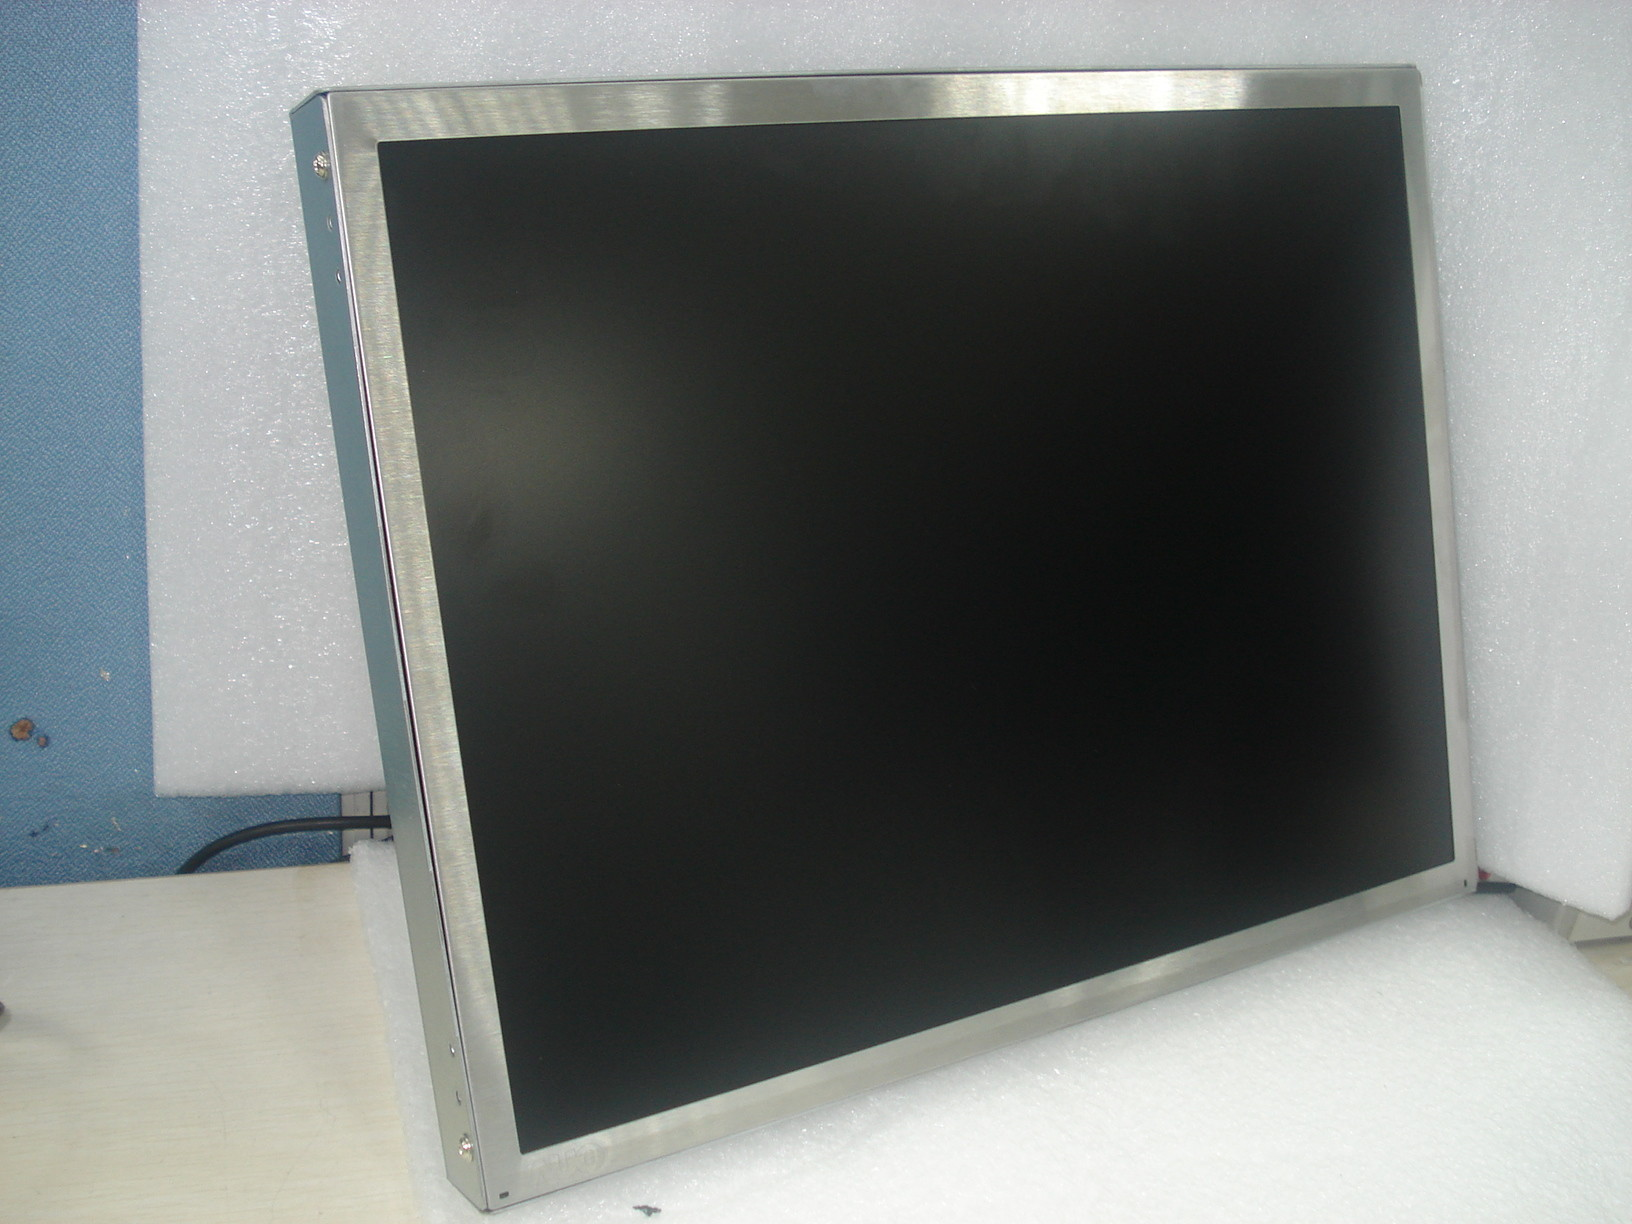 "300 Nits Brightness 19"" Open Frame LCD Monitor Simple Metal Frame Design 1280x1024"